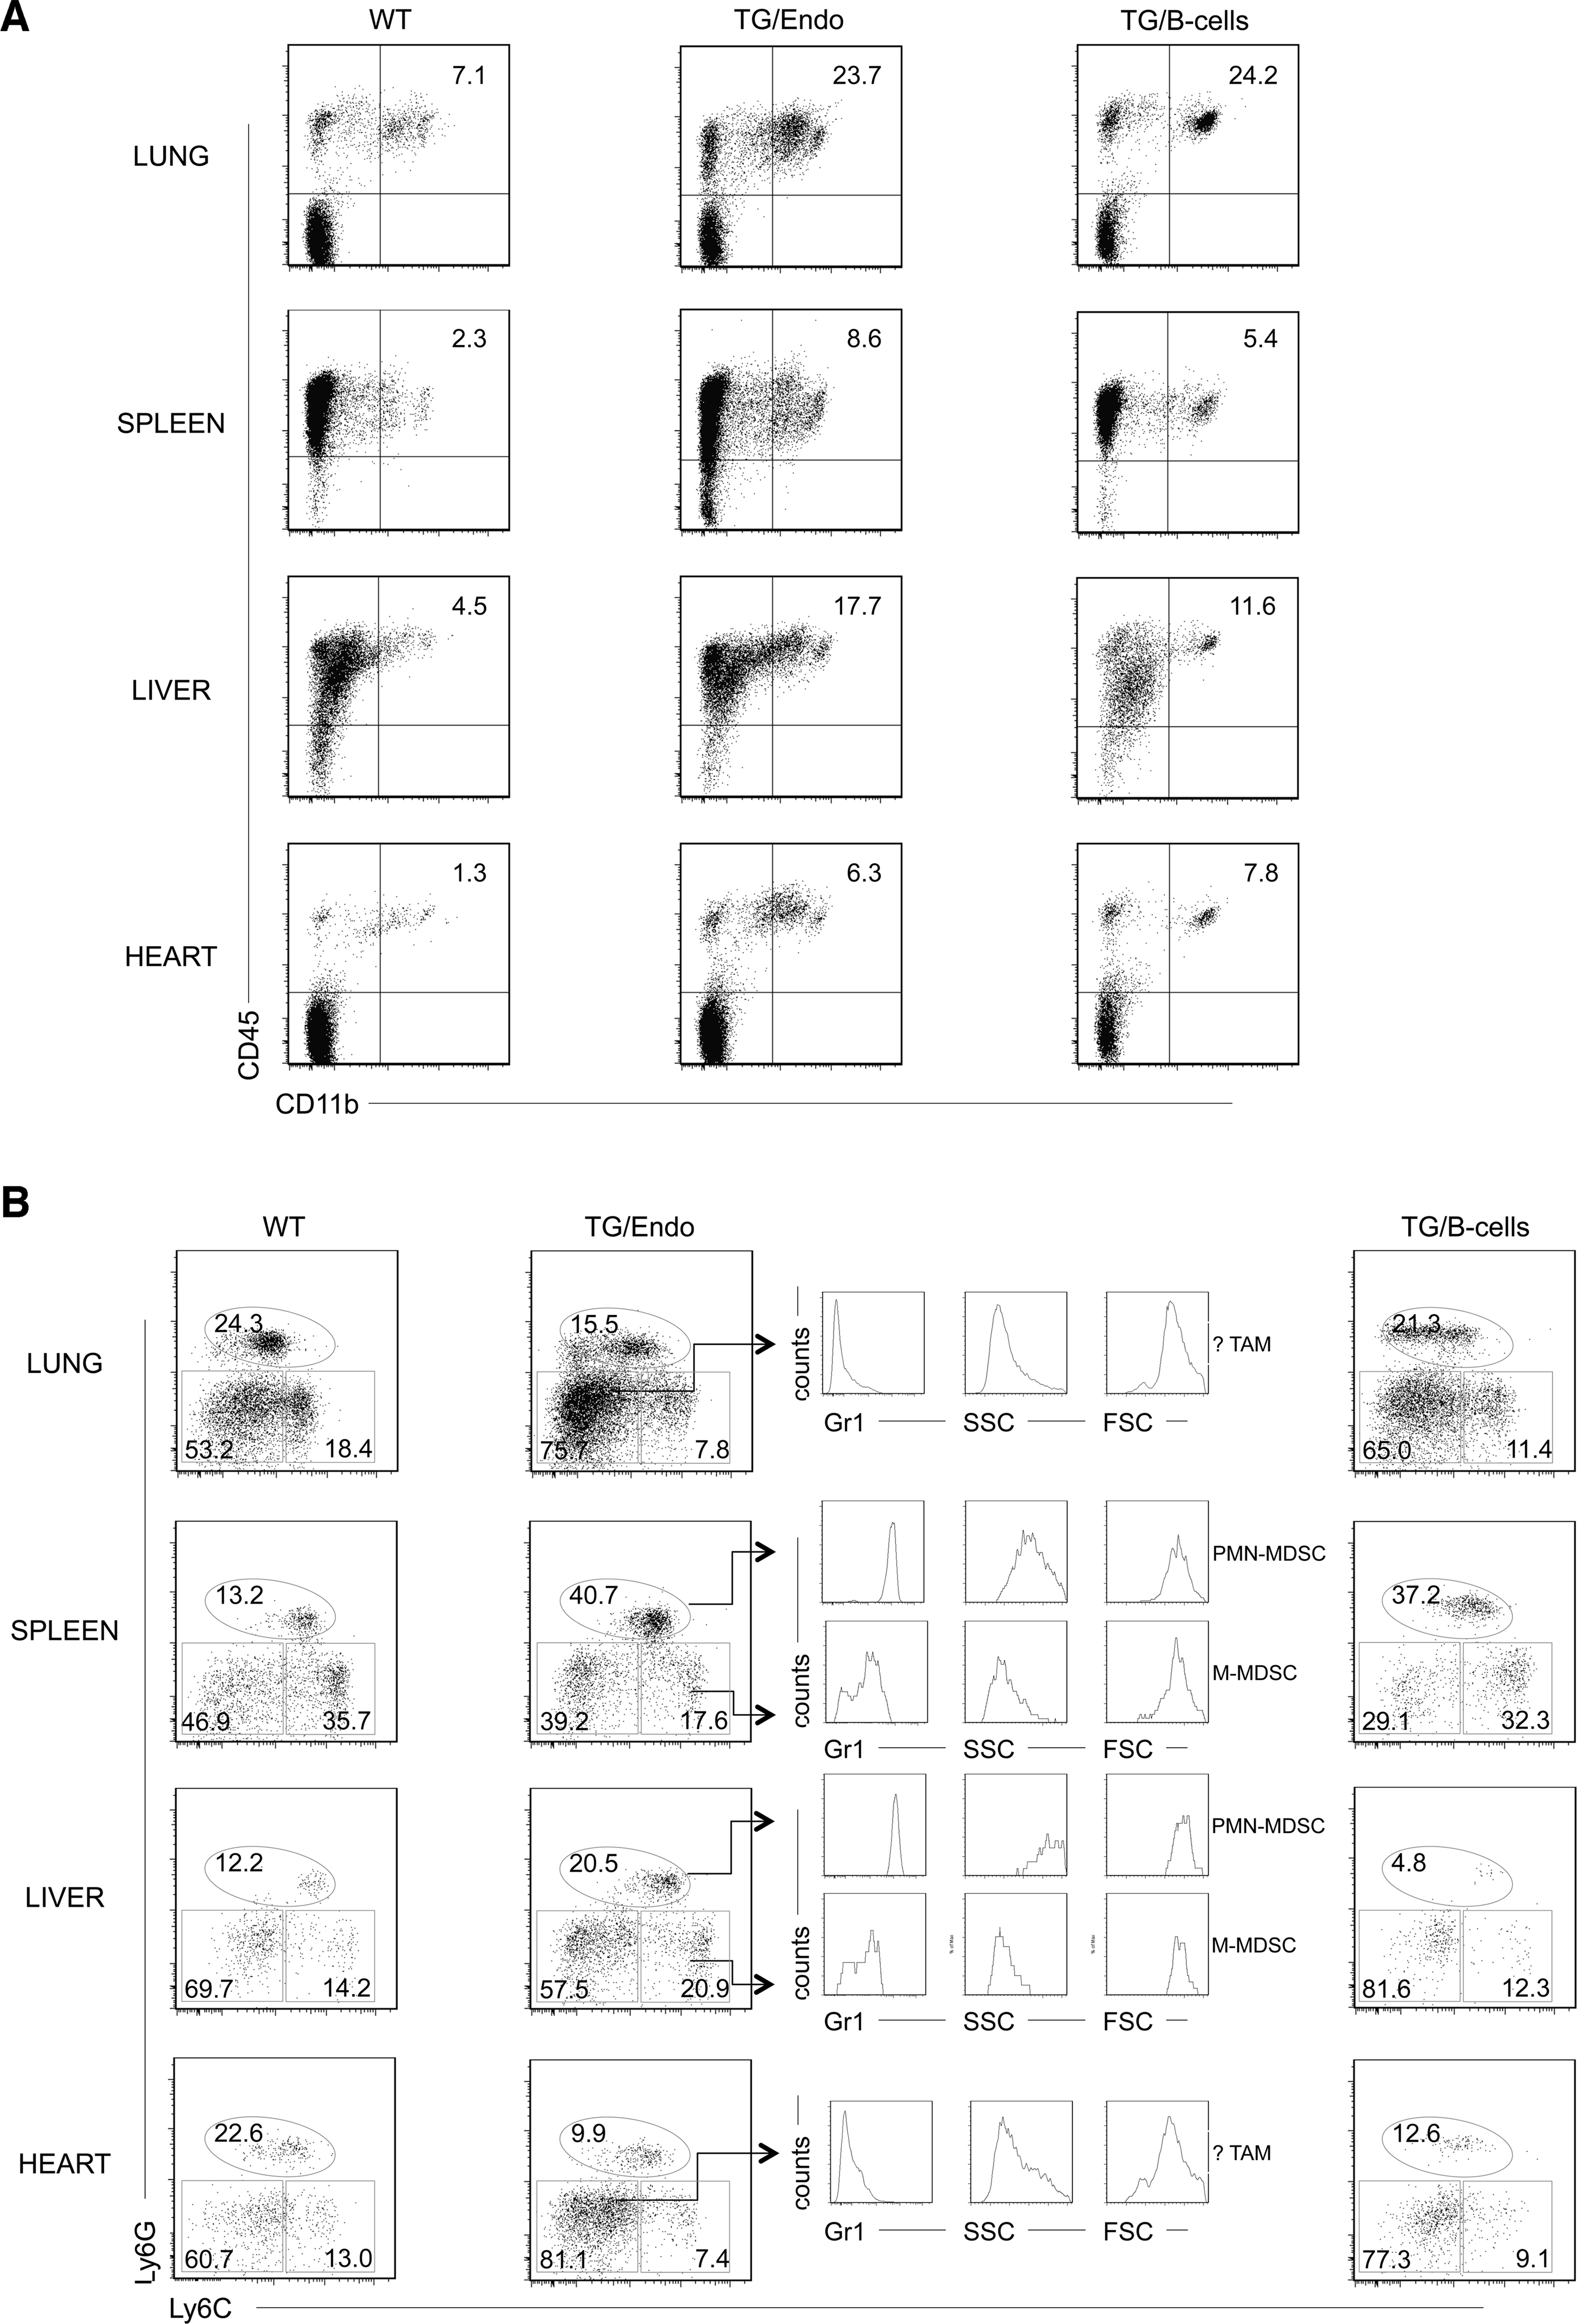 Expansion of myeloid cells with PMN-MDSC immunophenotype.